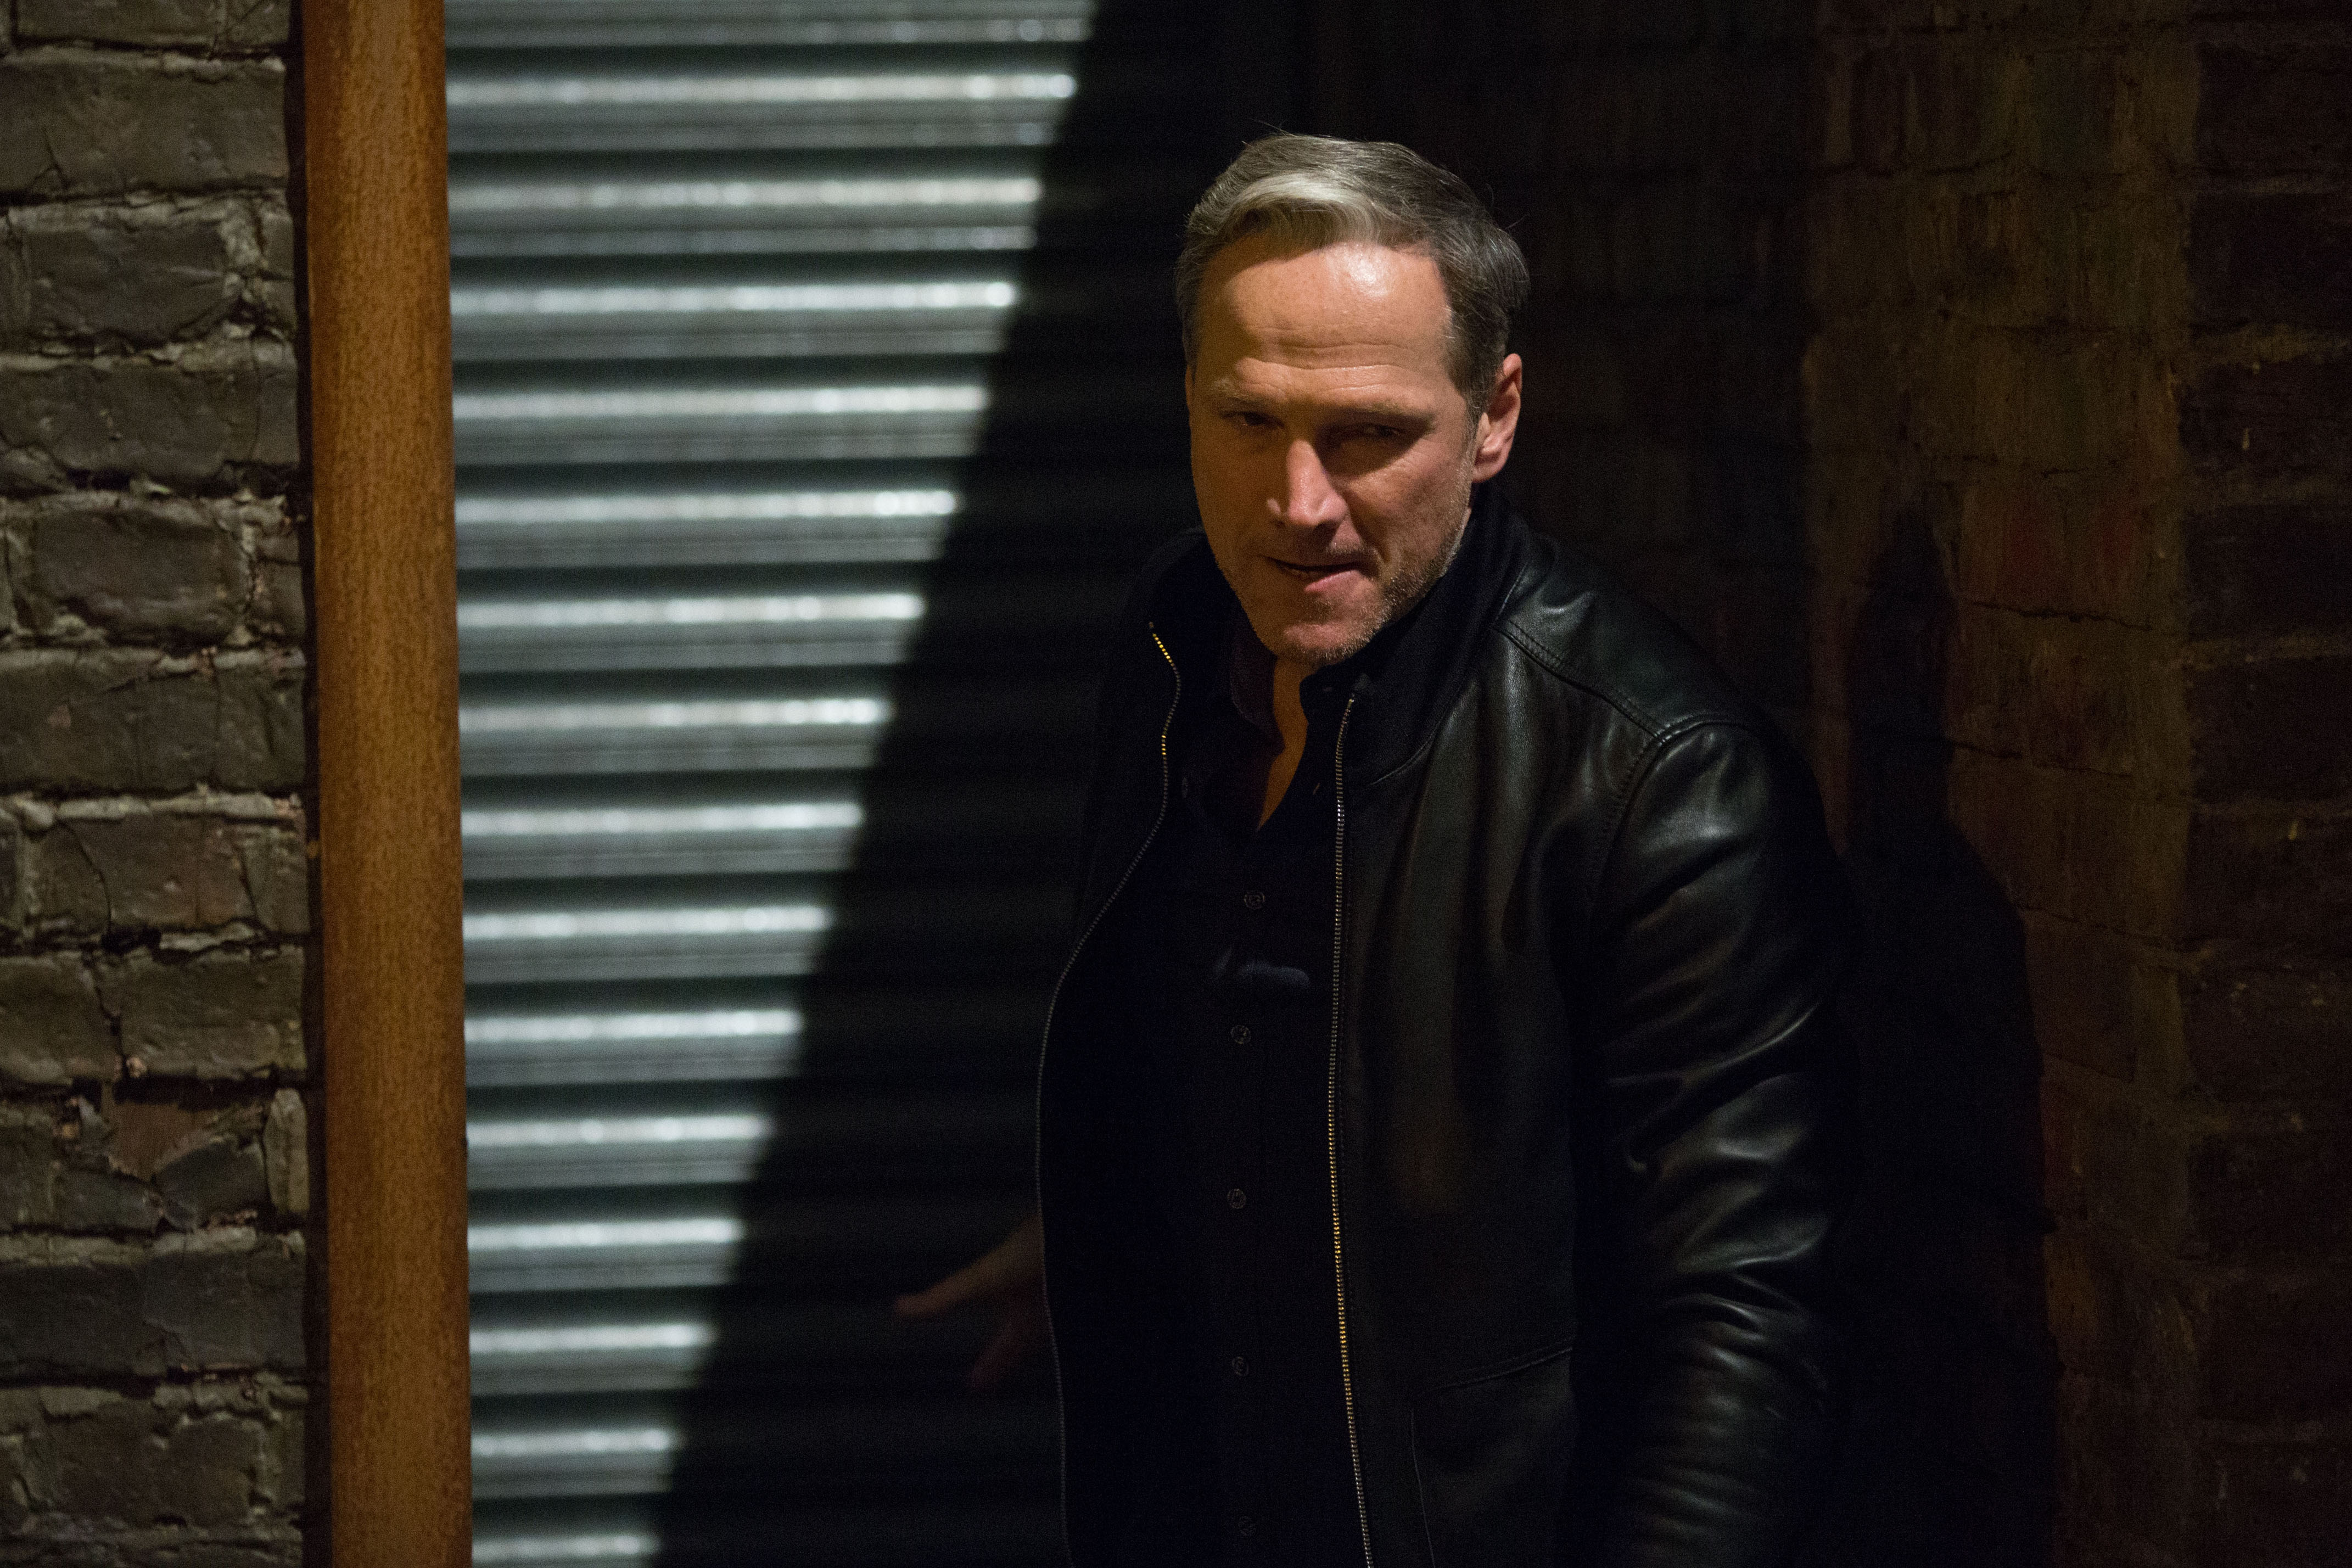 EastEnders spoilers: Ray attacks Jeff as he fears he'll out his secret – what is he hiding?